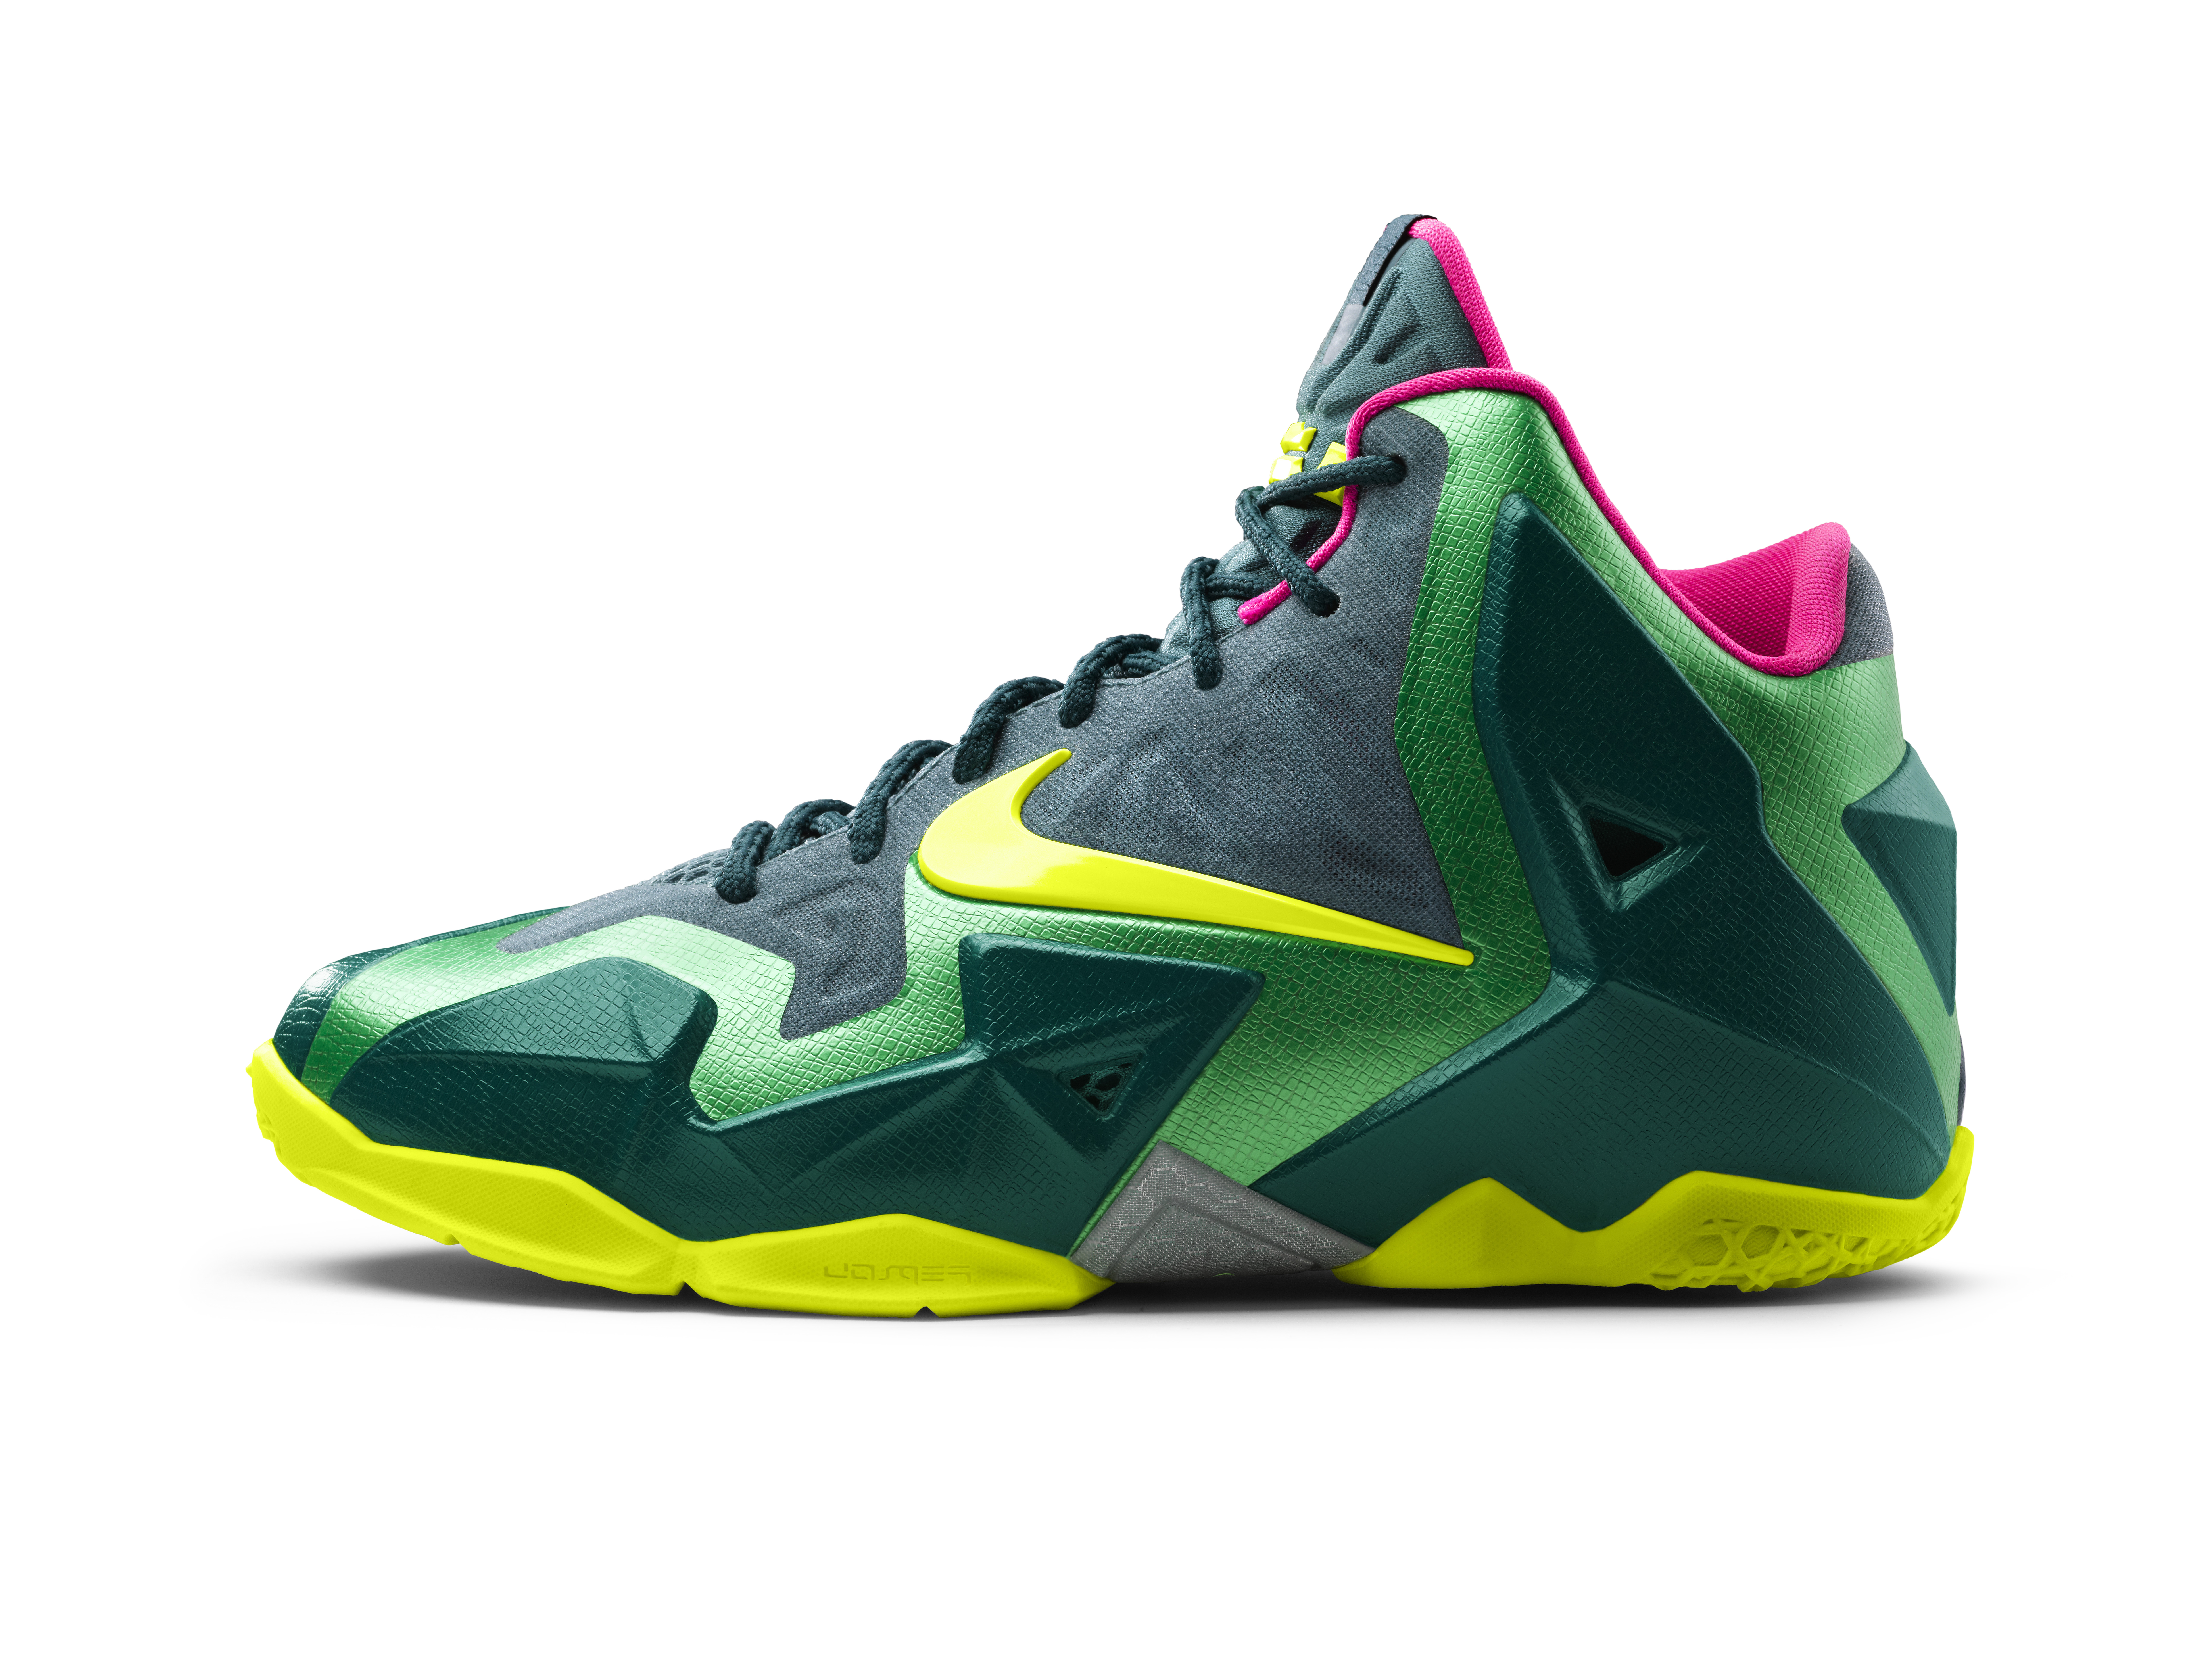 10328x7760 Lebron 11 T Rex Colorway Big Inspiration For Smaller Feet